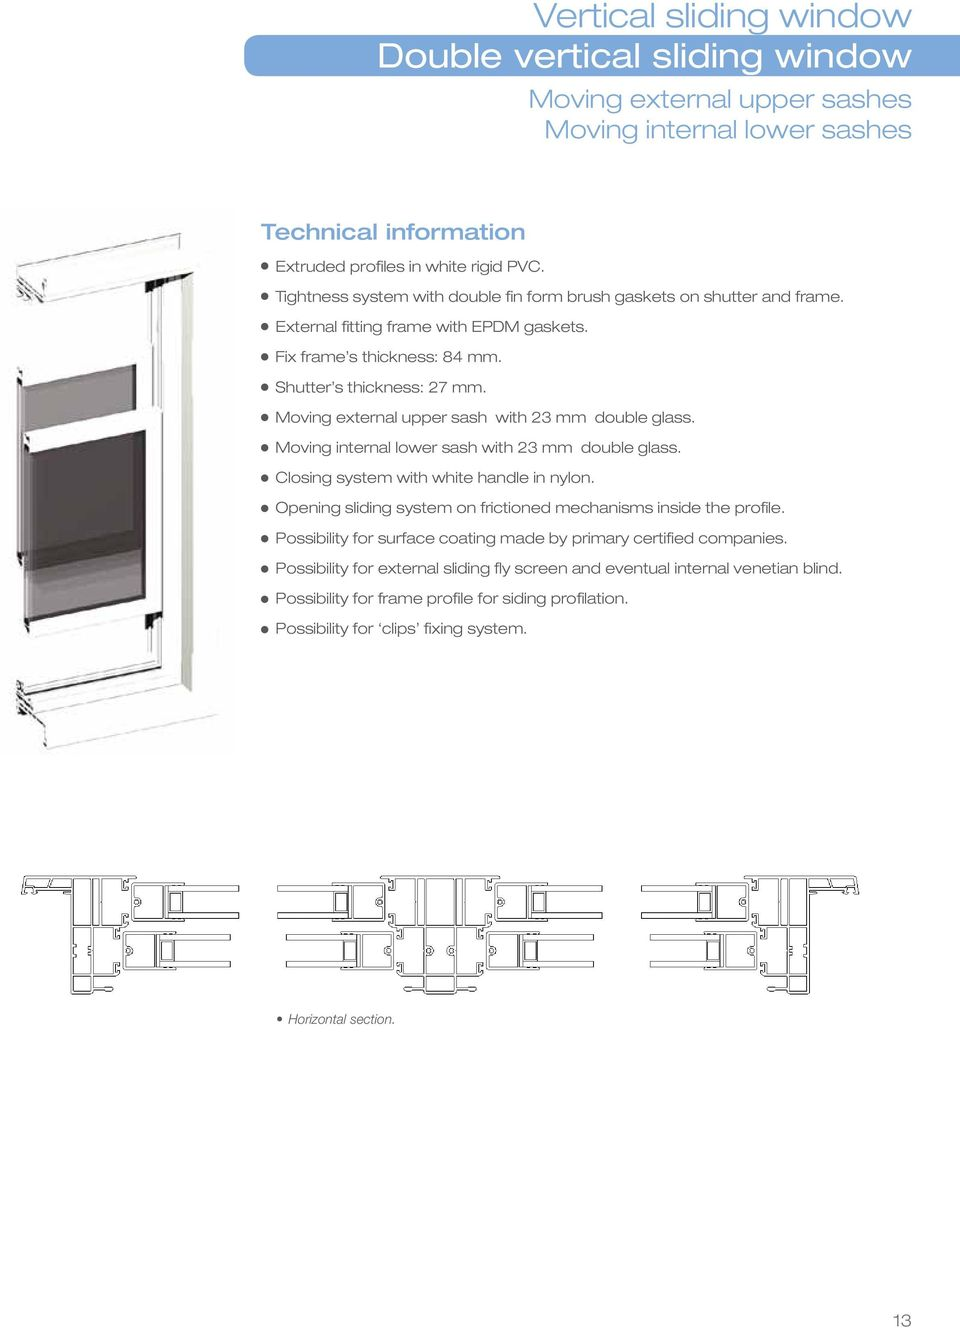 Moving external upper sash with 23 mm double glass. Moving internal lower sash with 23 mm double glass. Closing system with white handle in nylon.